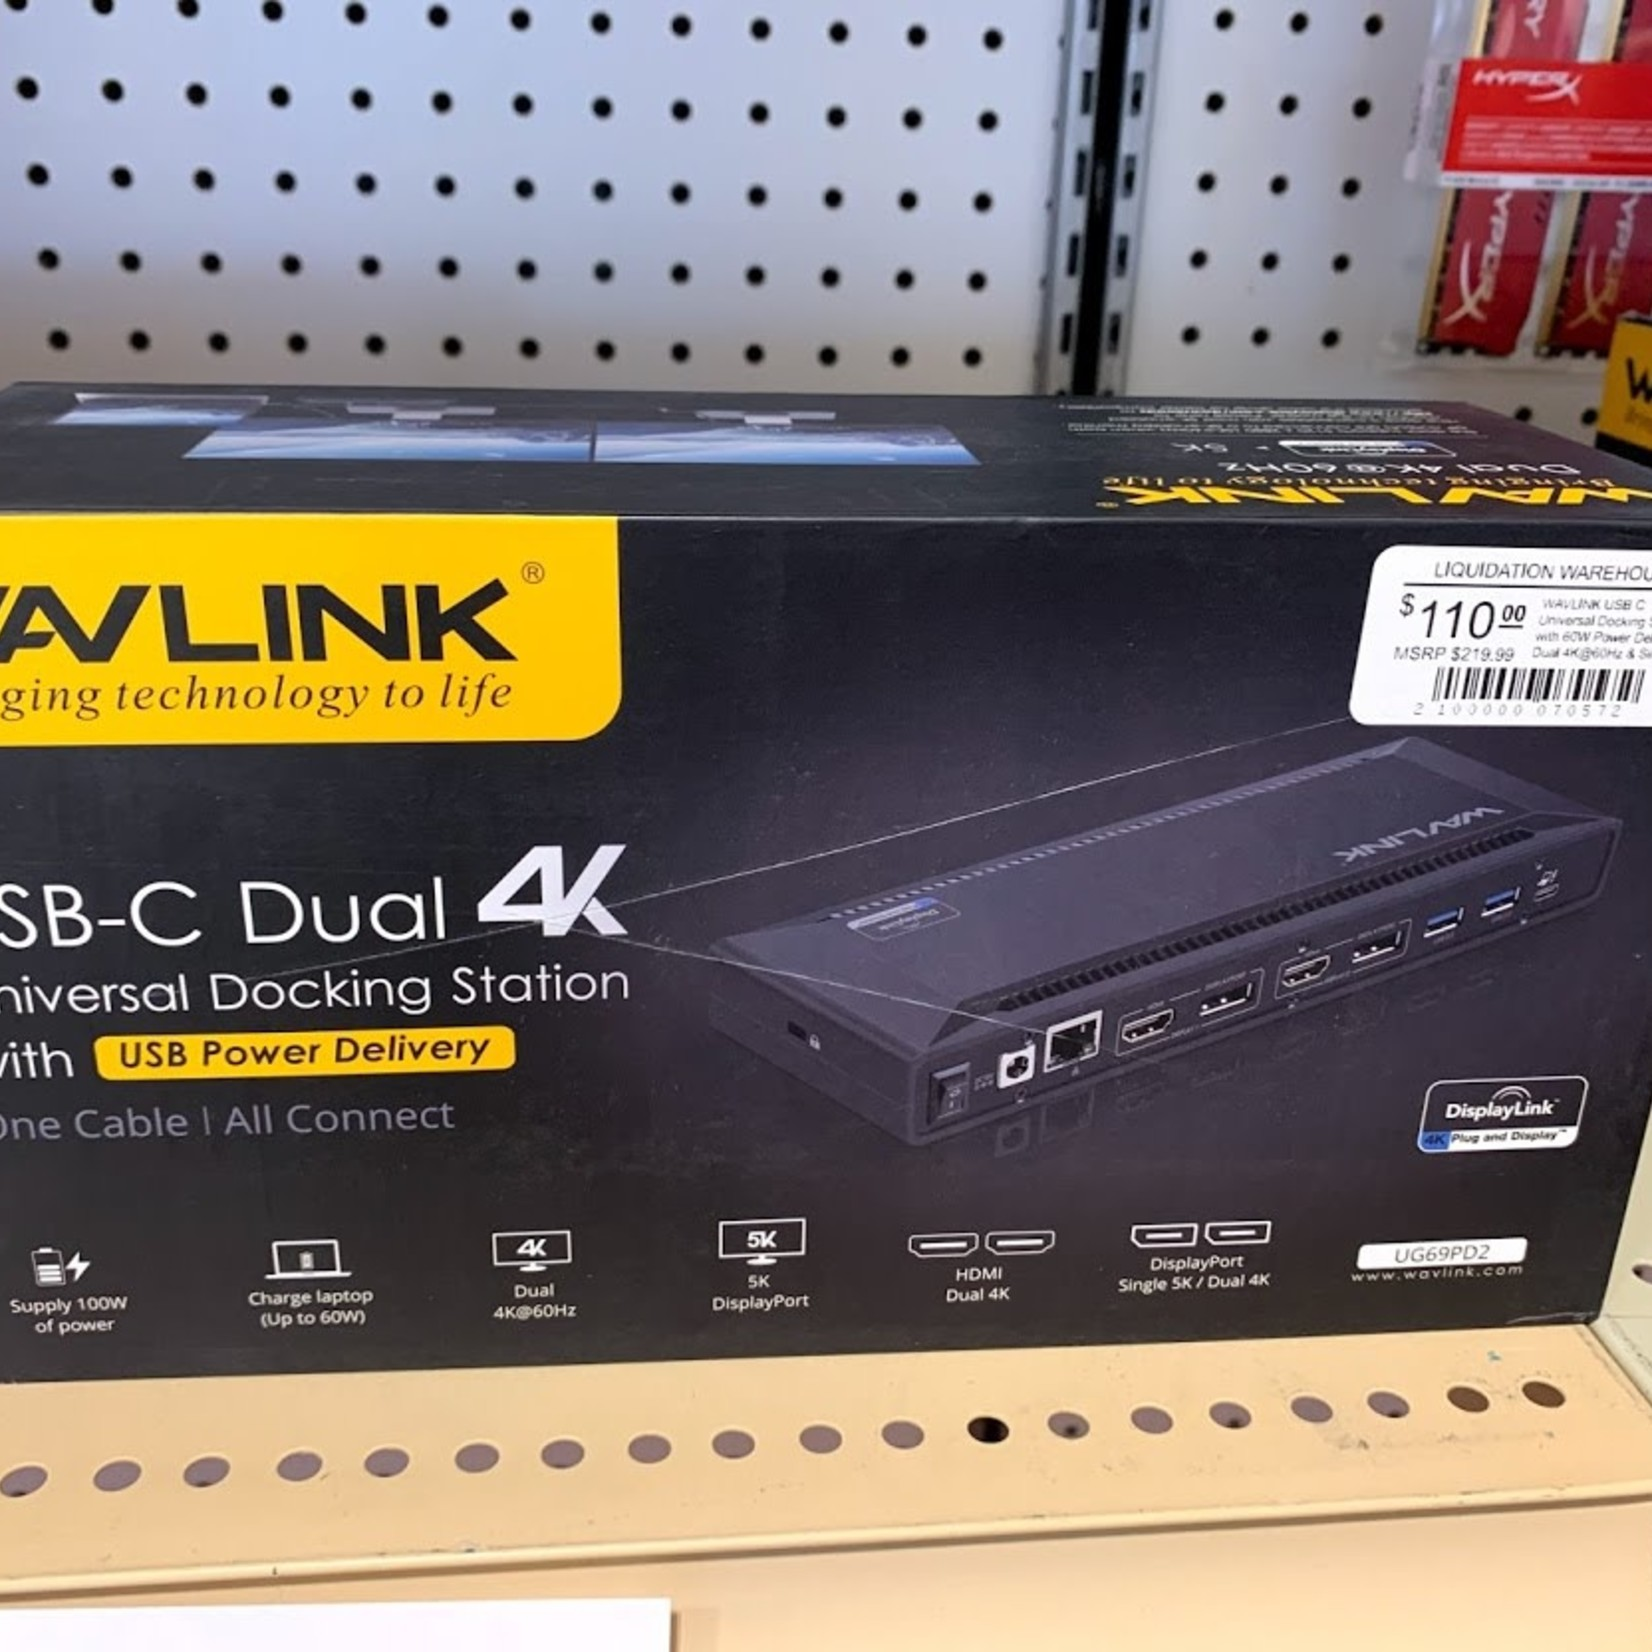 WAVLINK USB C Universal Docking Station with power delivery WL-UG69PD2